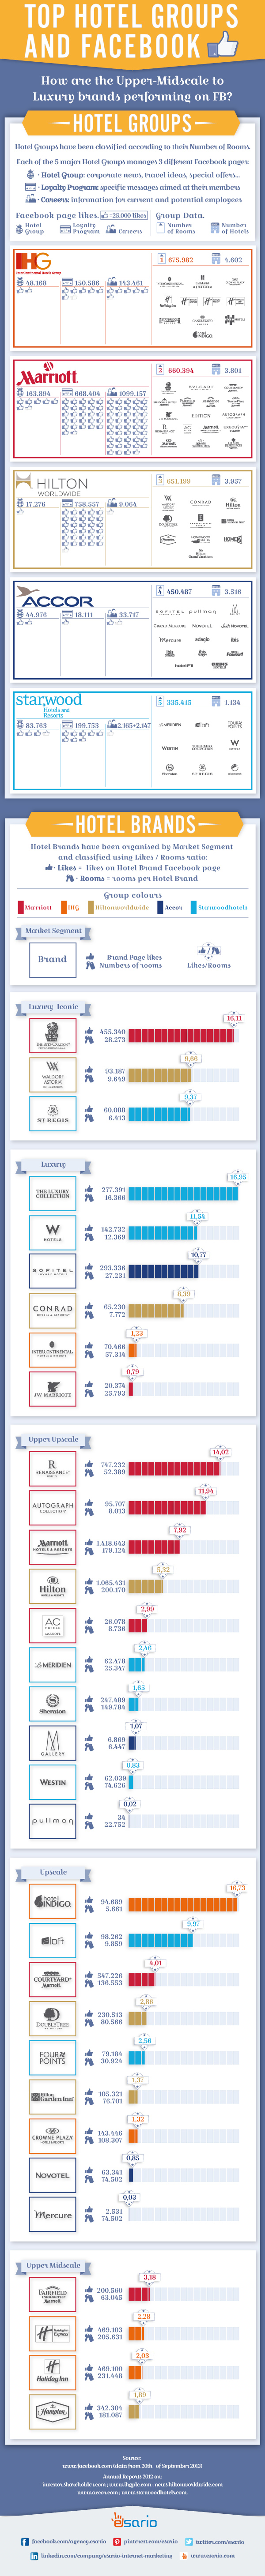 top-hotel-groups--facebook-infographic_5256af4aeb92c